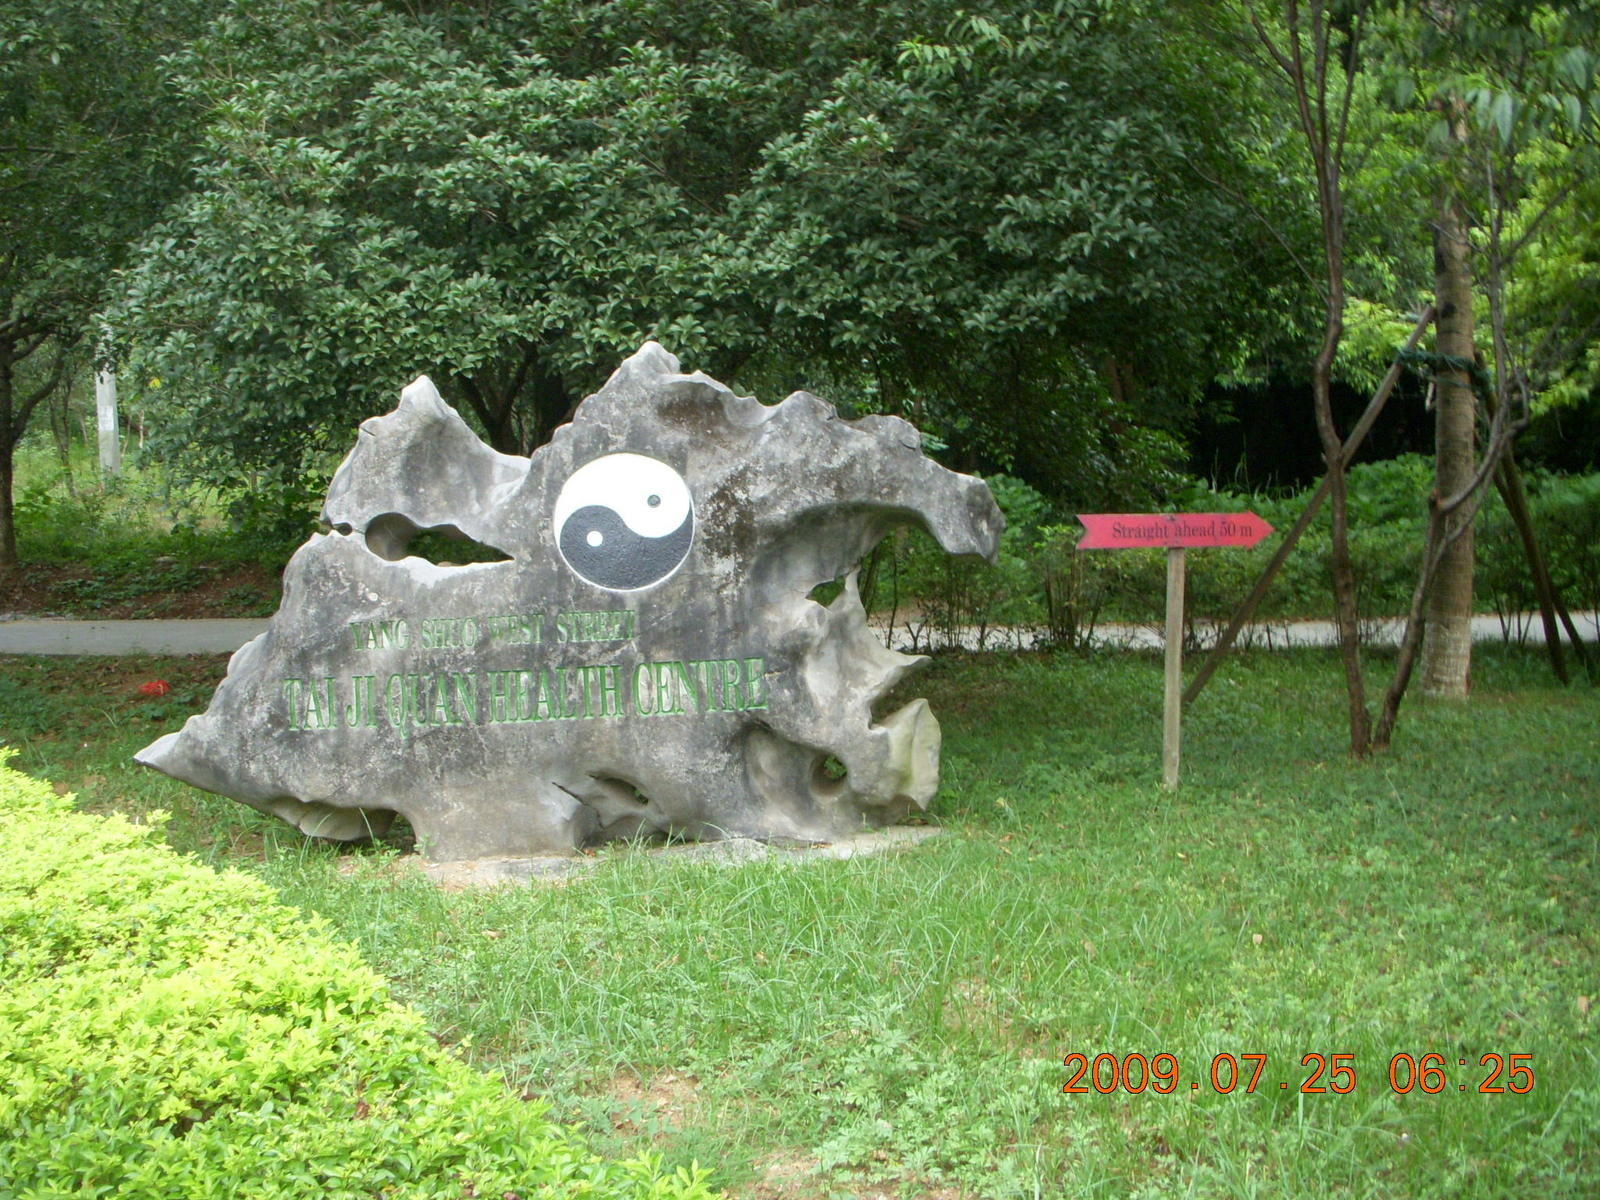 China eclipse - Yangshuo run - yin/yang rock